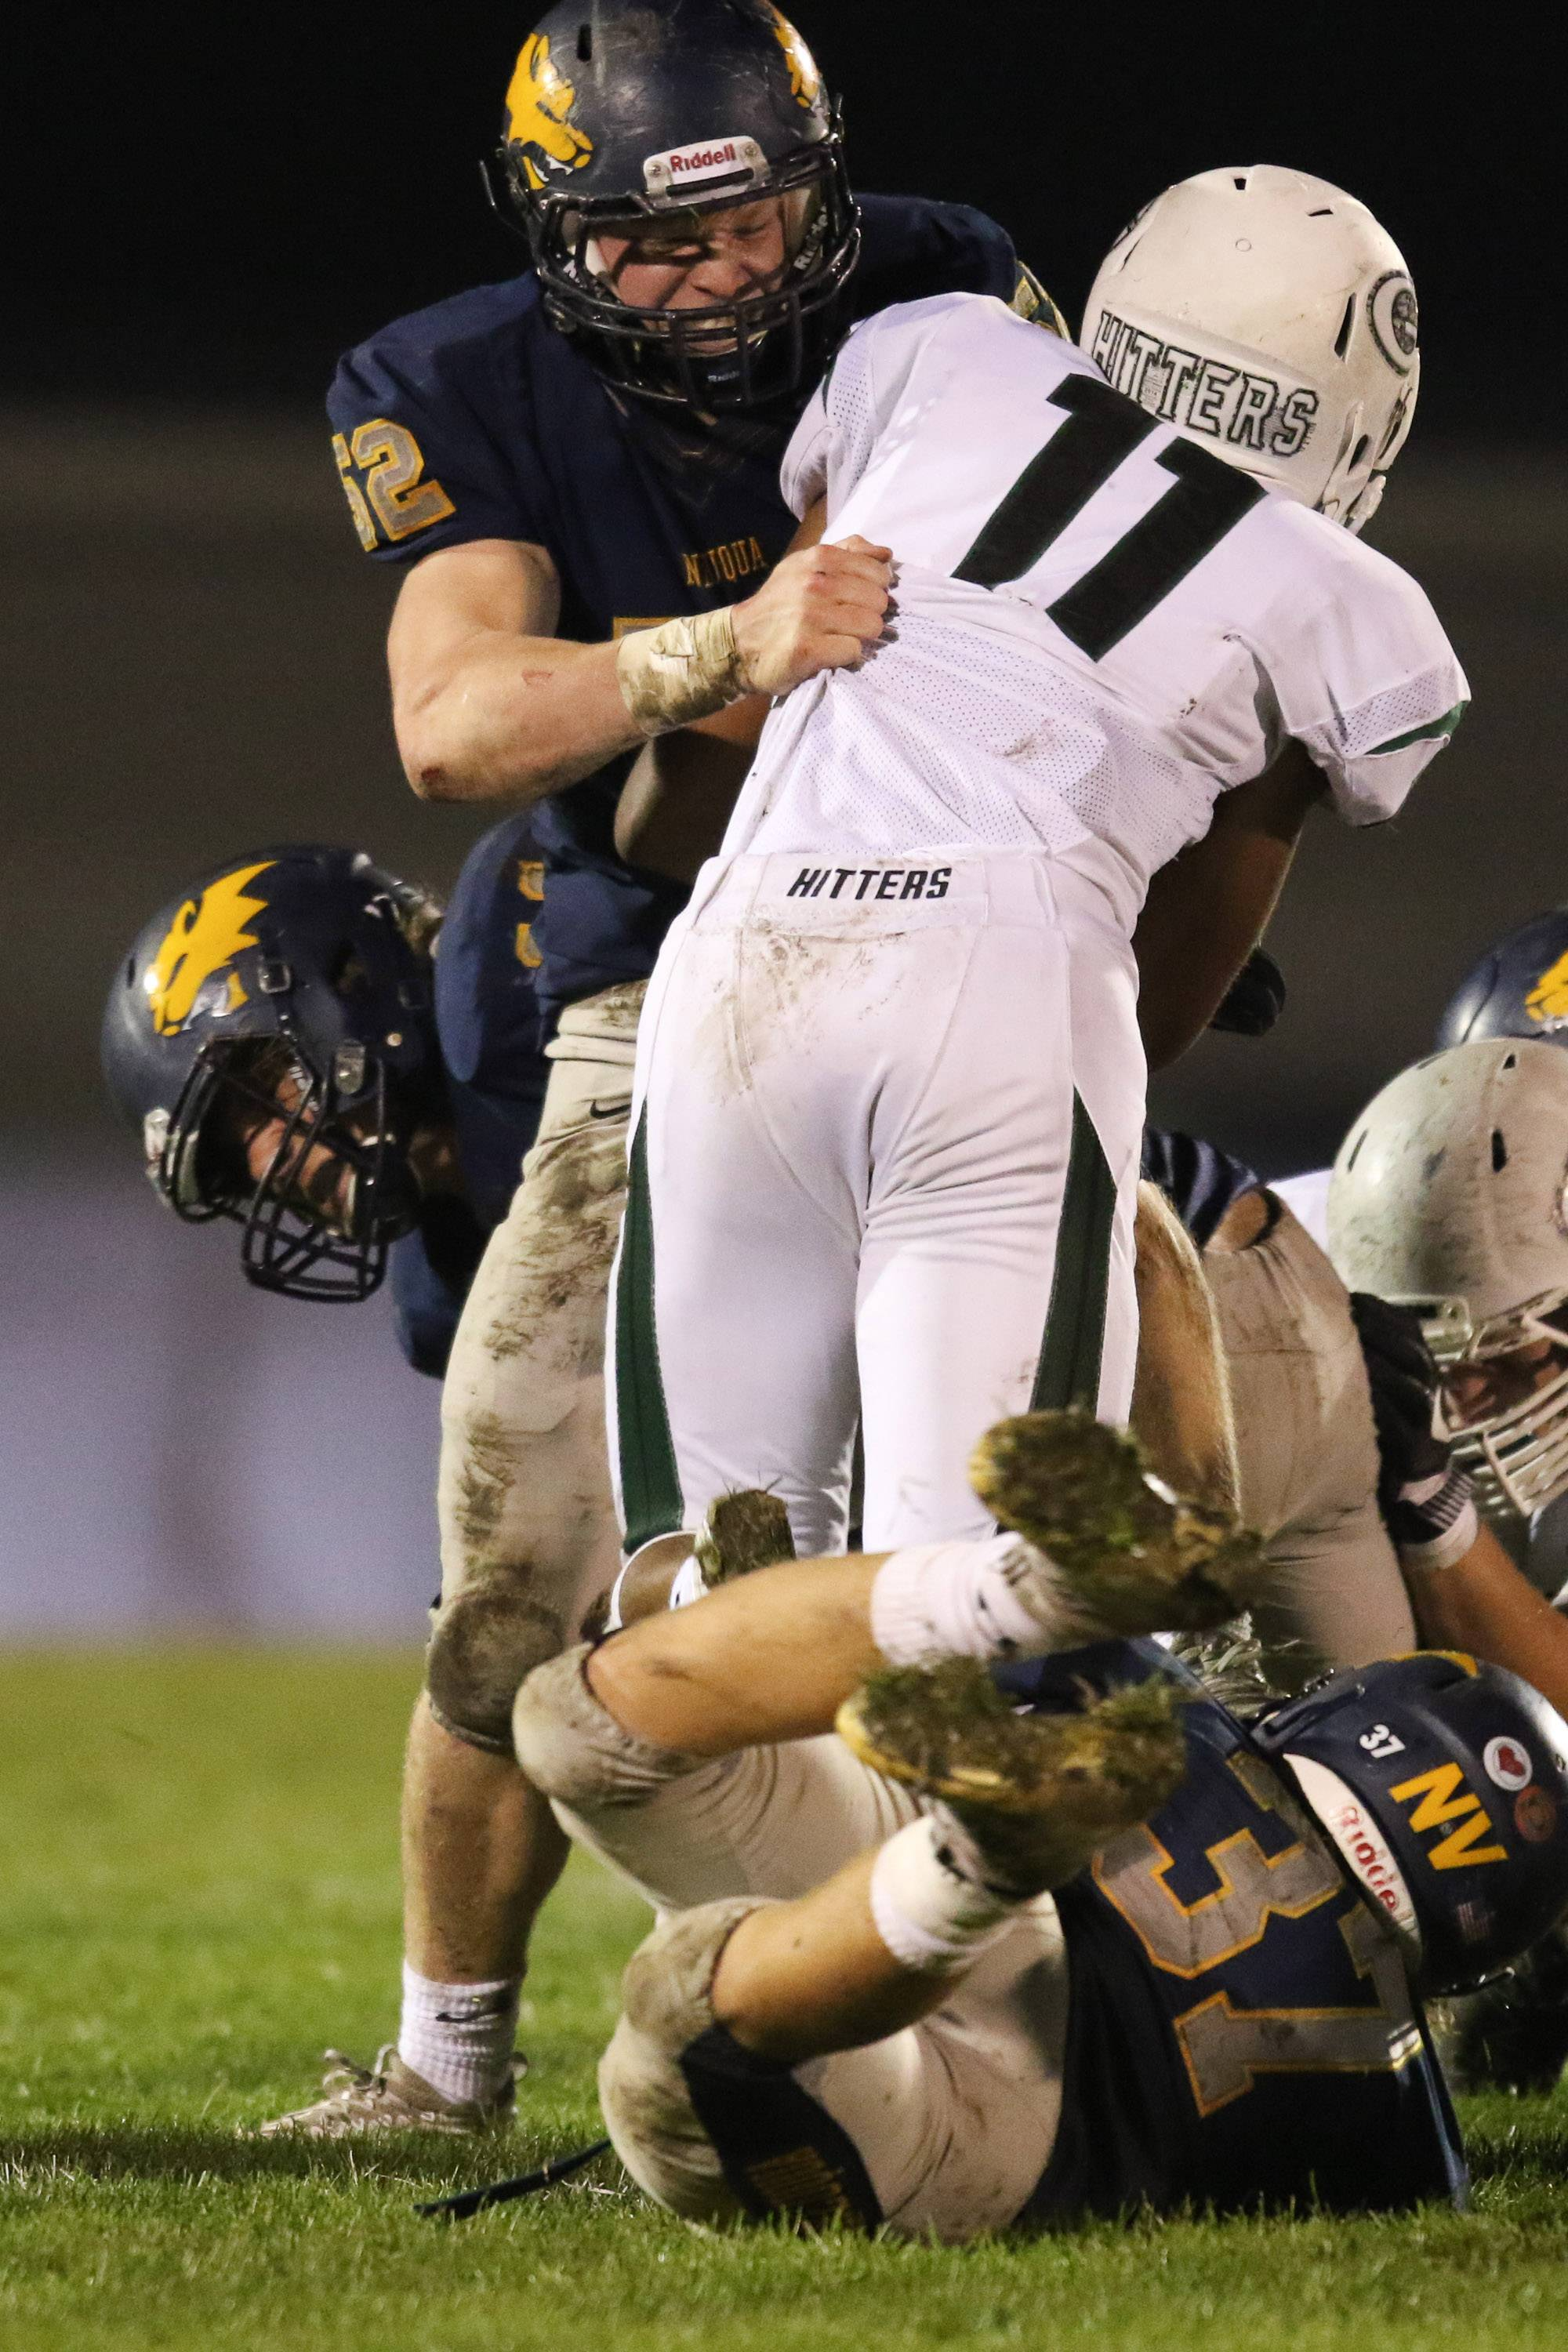 Neuqua Valley nose guard Jackson Keating (52) hits Glenbard West running back Dre Thomas (11) for a loss at Neuqua Valley High School in Naperville, IL on Saturday, October 29, 2016